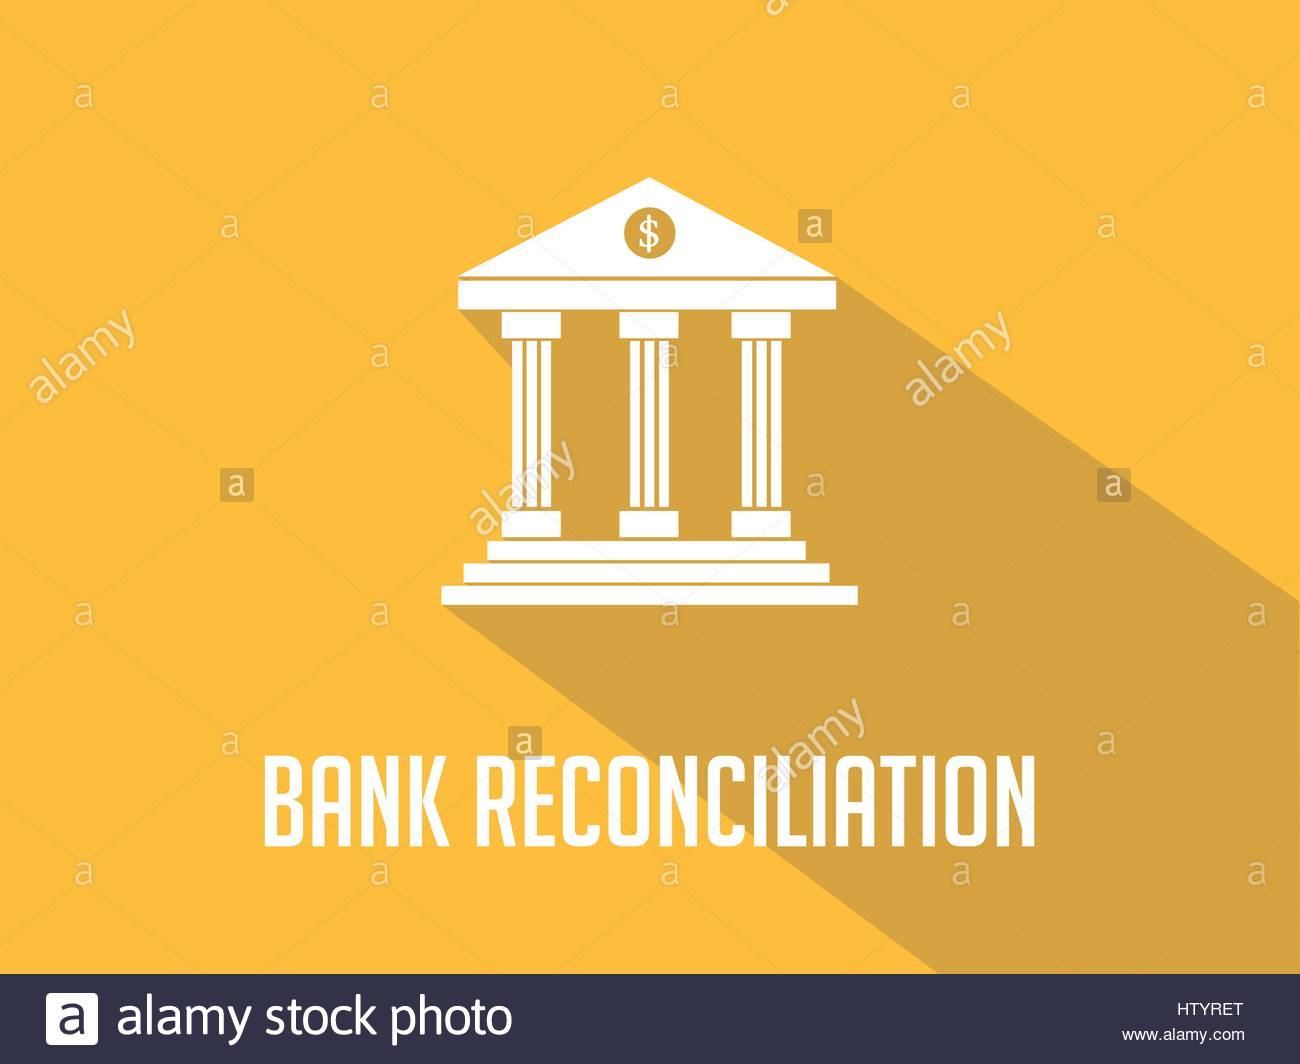 Bank reconciliation white text with bank office building 1300x1064